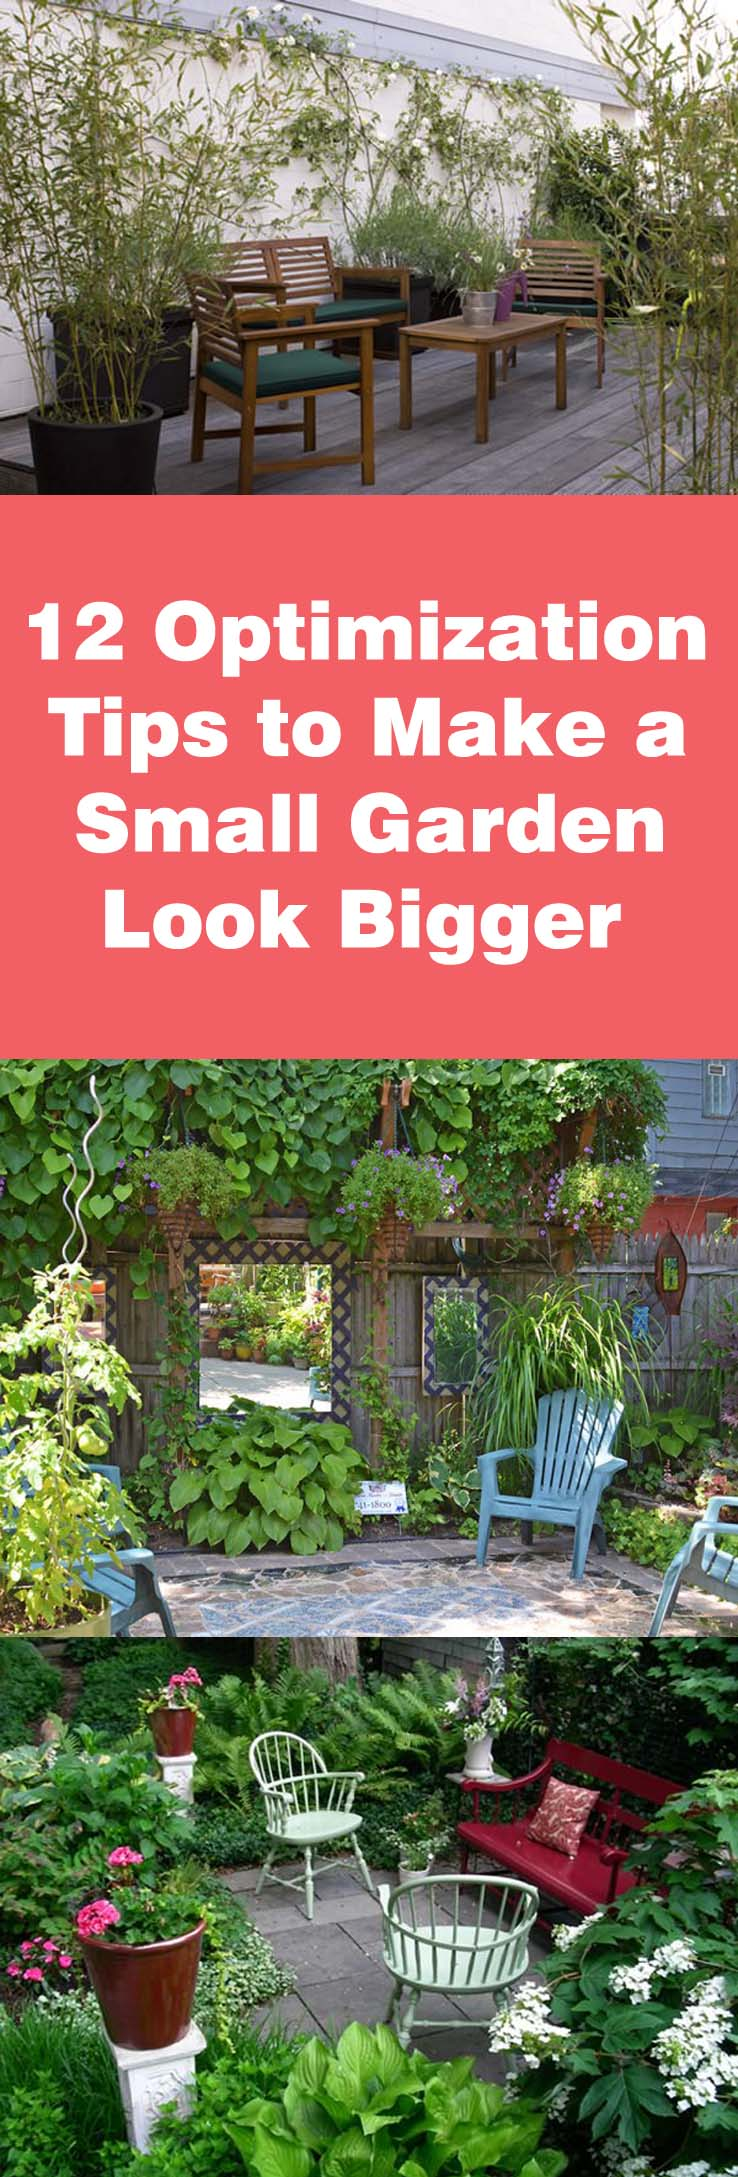 How to Make a Small Garden Look Bigger